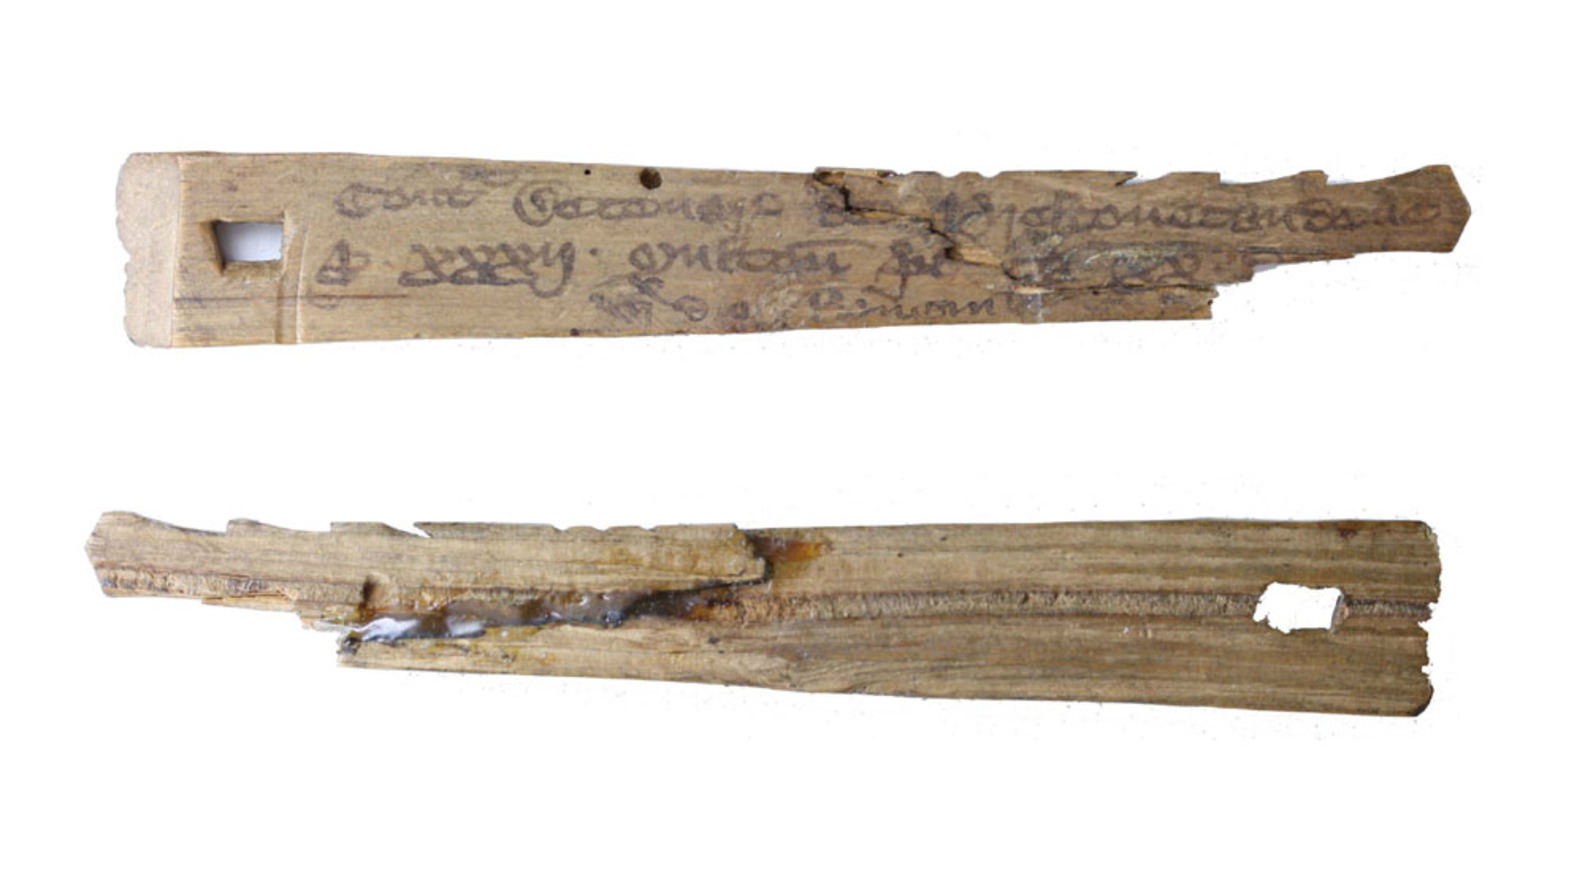 Medieval English tally sticks